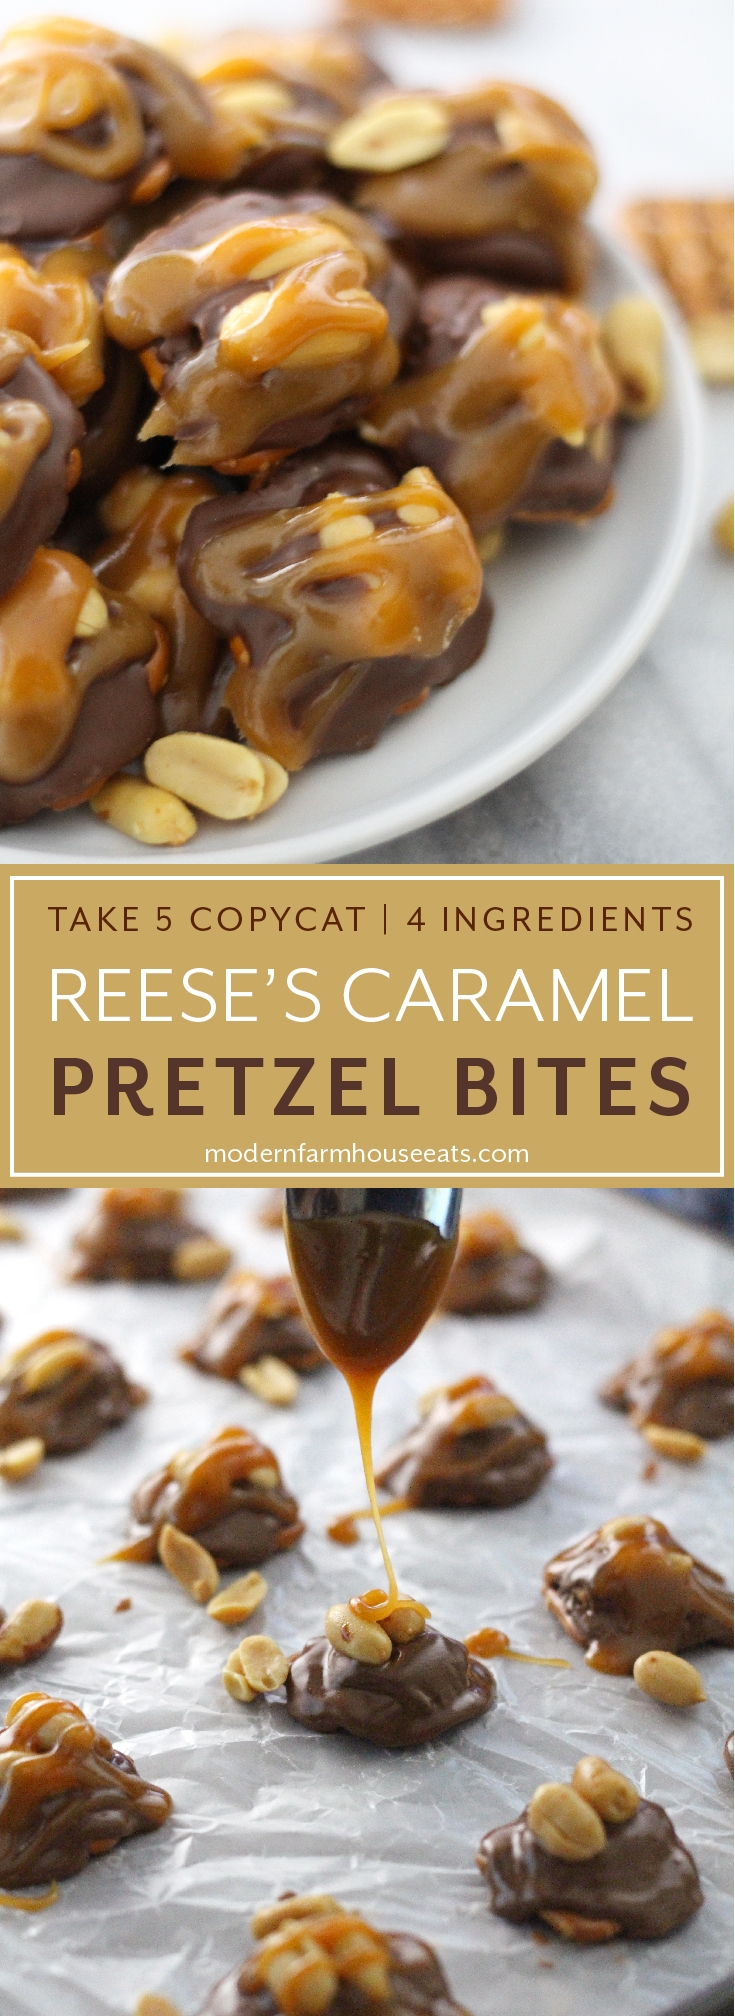 These sweet and salty Reese's Caramel Bites taste just like a Take 5 candy bar! They are quick and easy to make with only 4 ingredients.